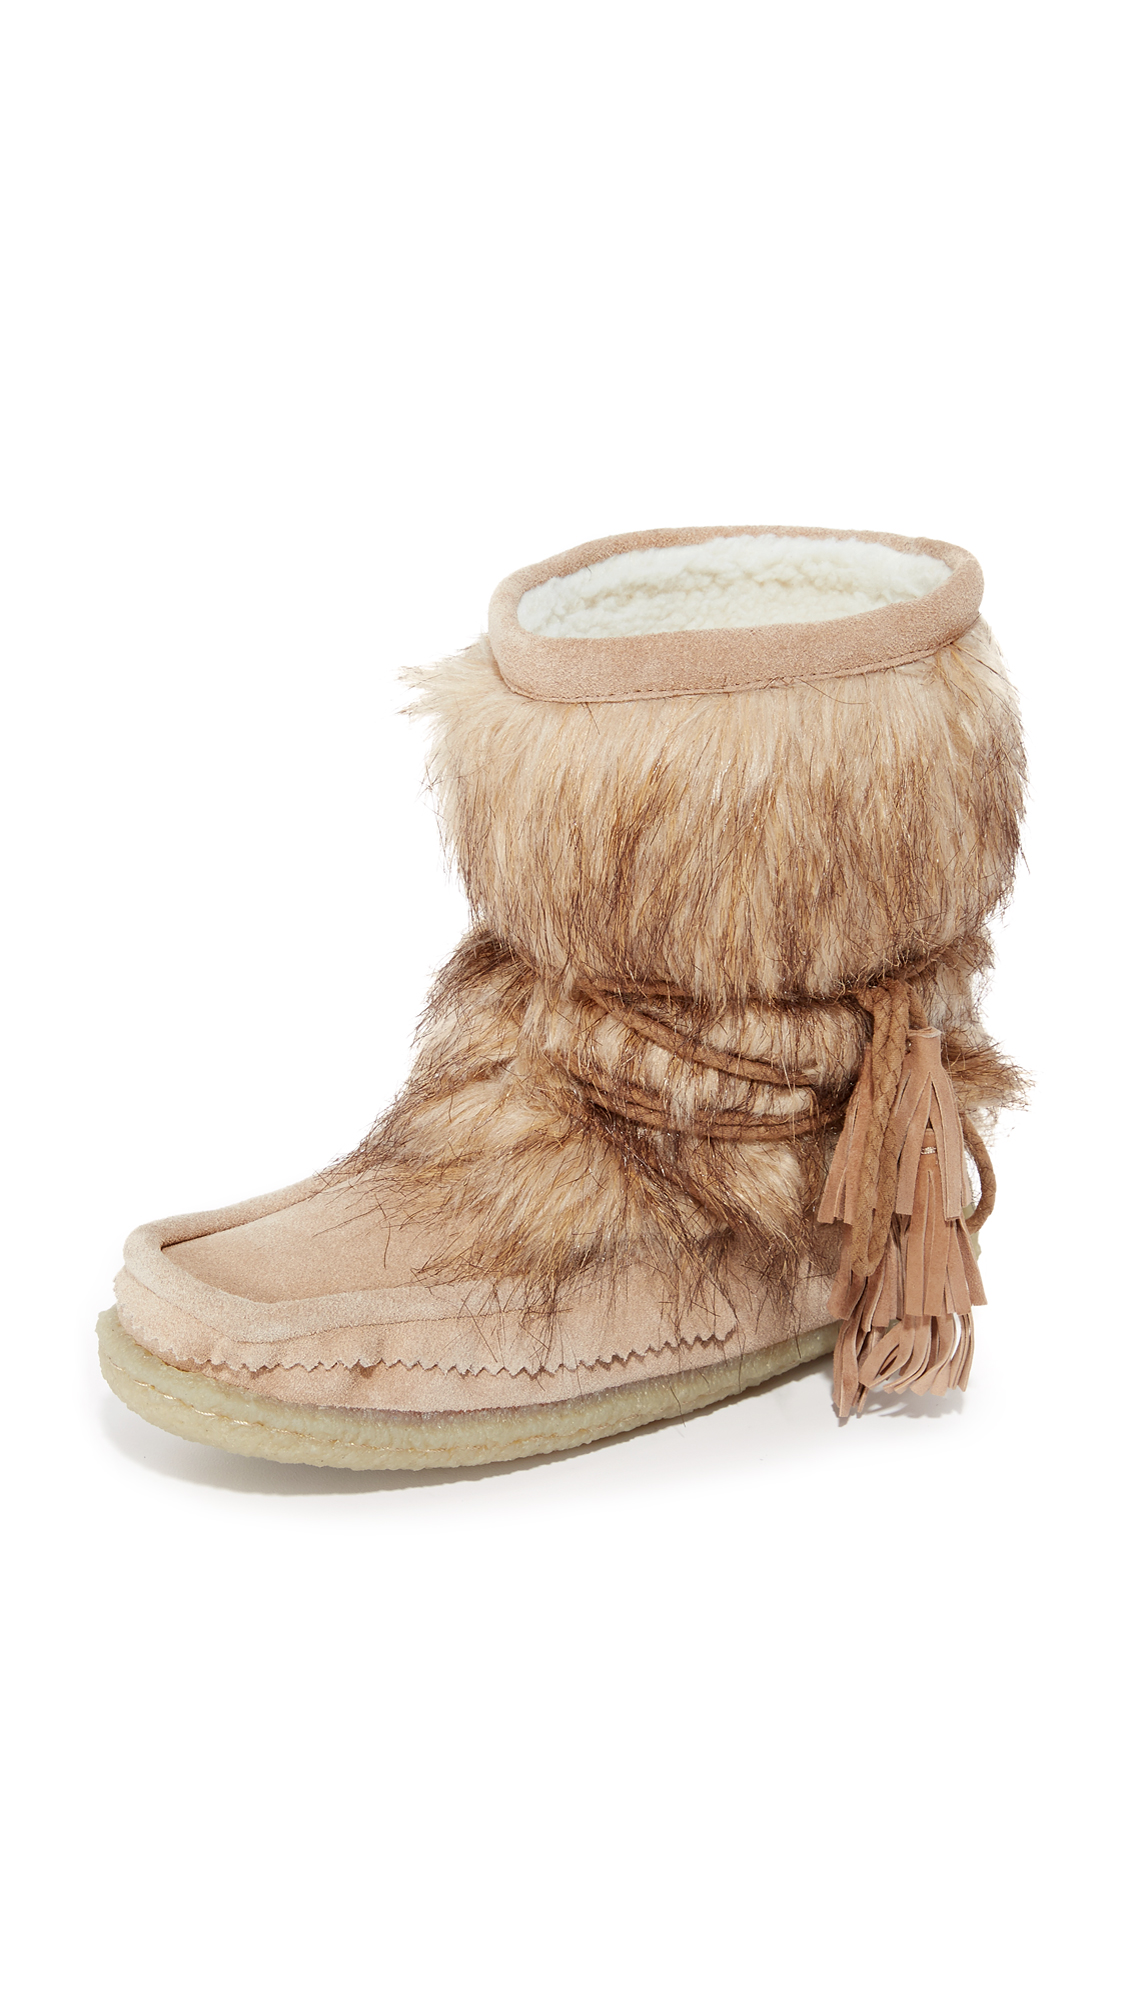 Joie Alabama Eskimo Booties - Gesso/Multi